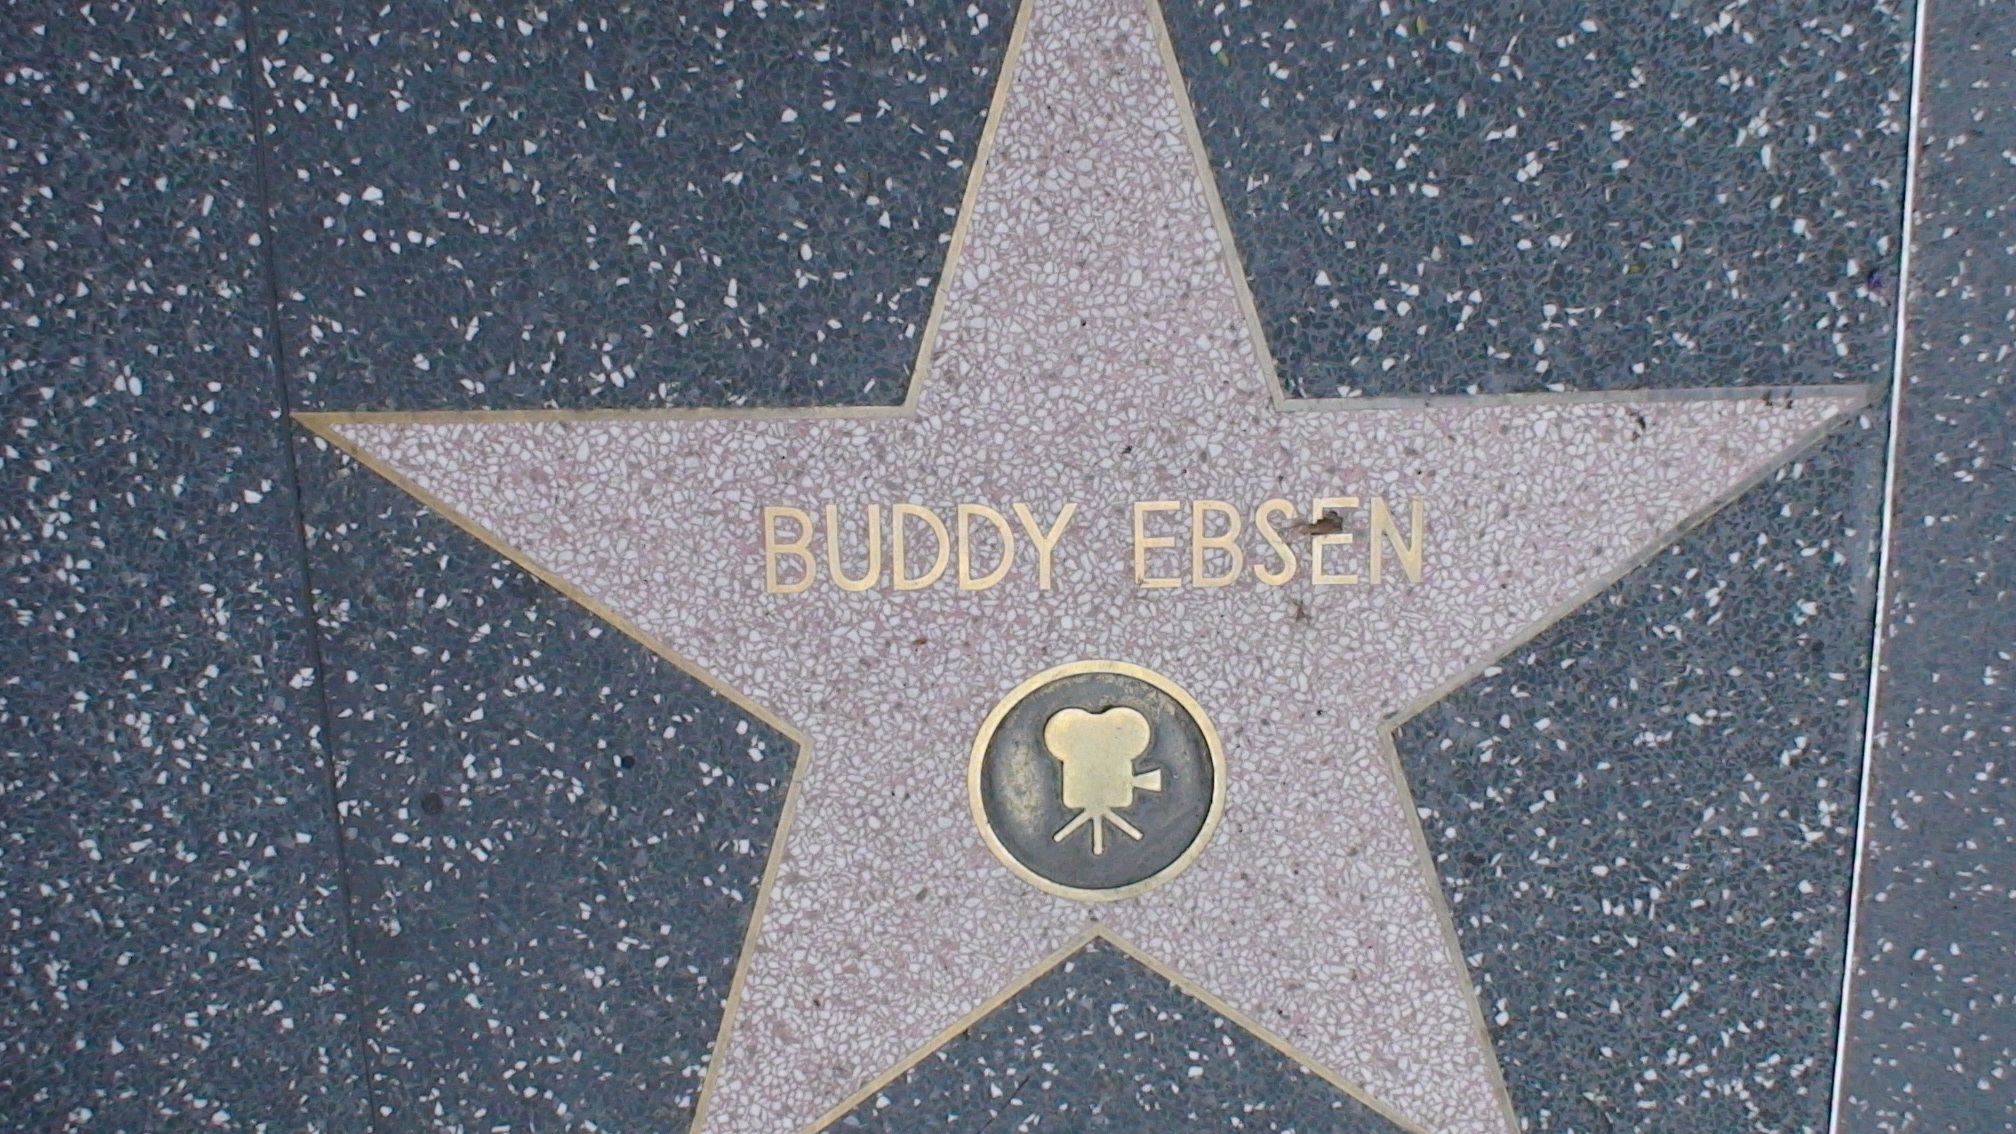 Buddy Ebsen's quote #1